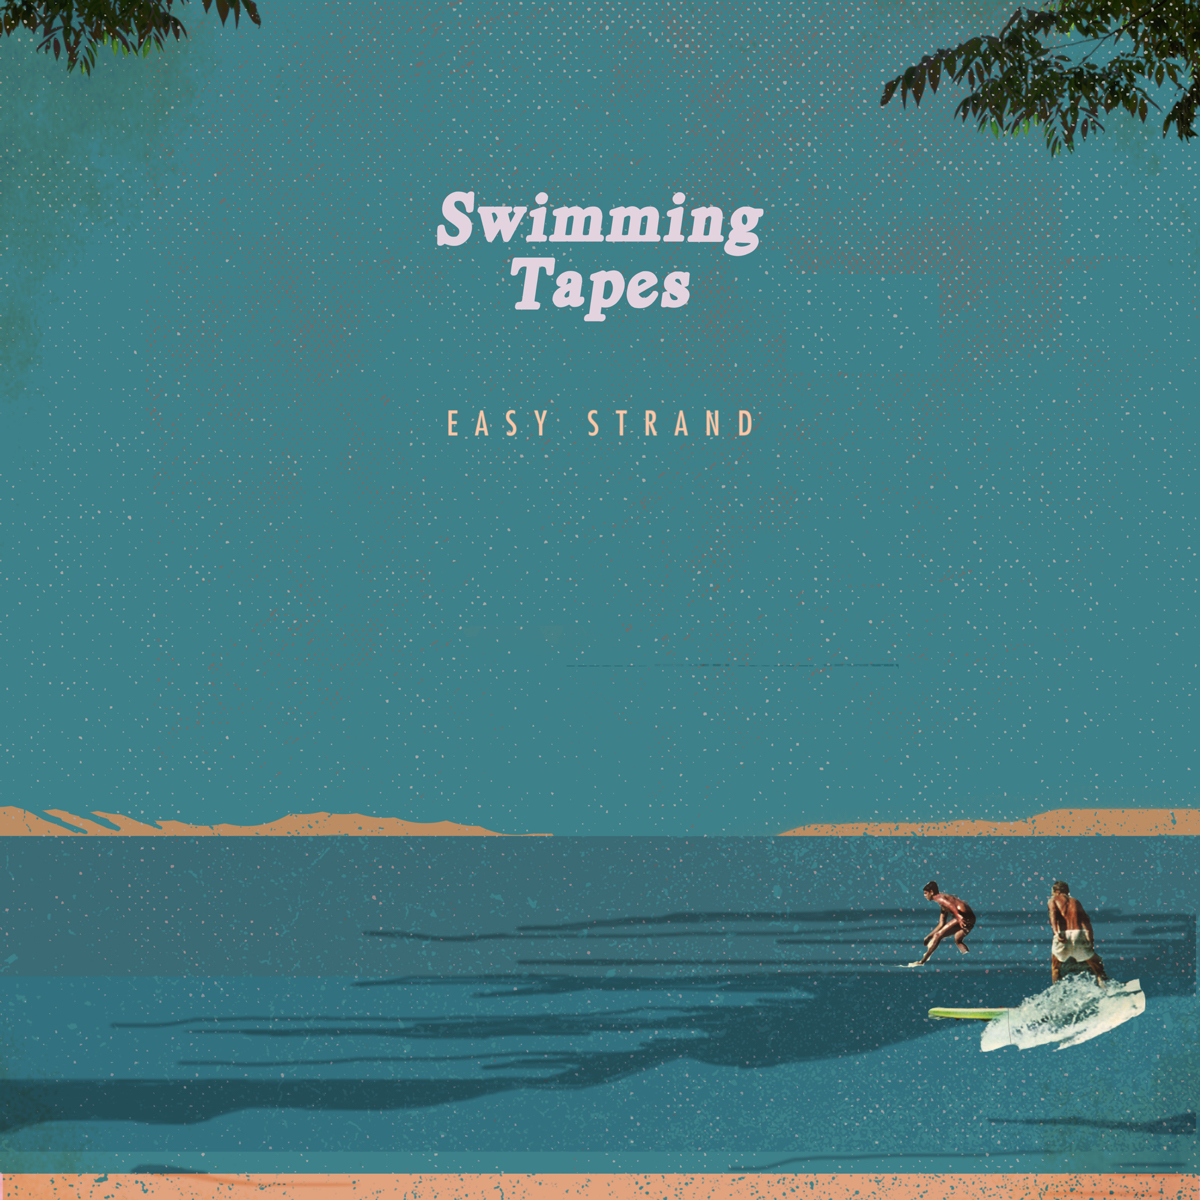 Swimming Tapes Easy Strand Artwork